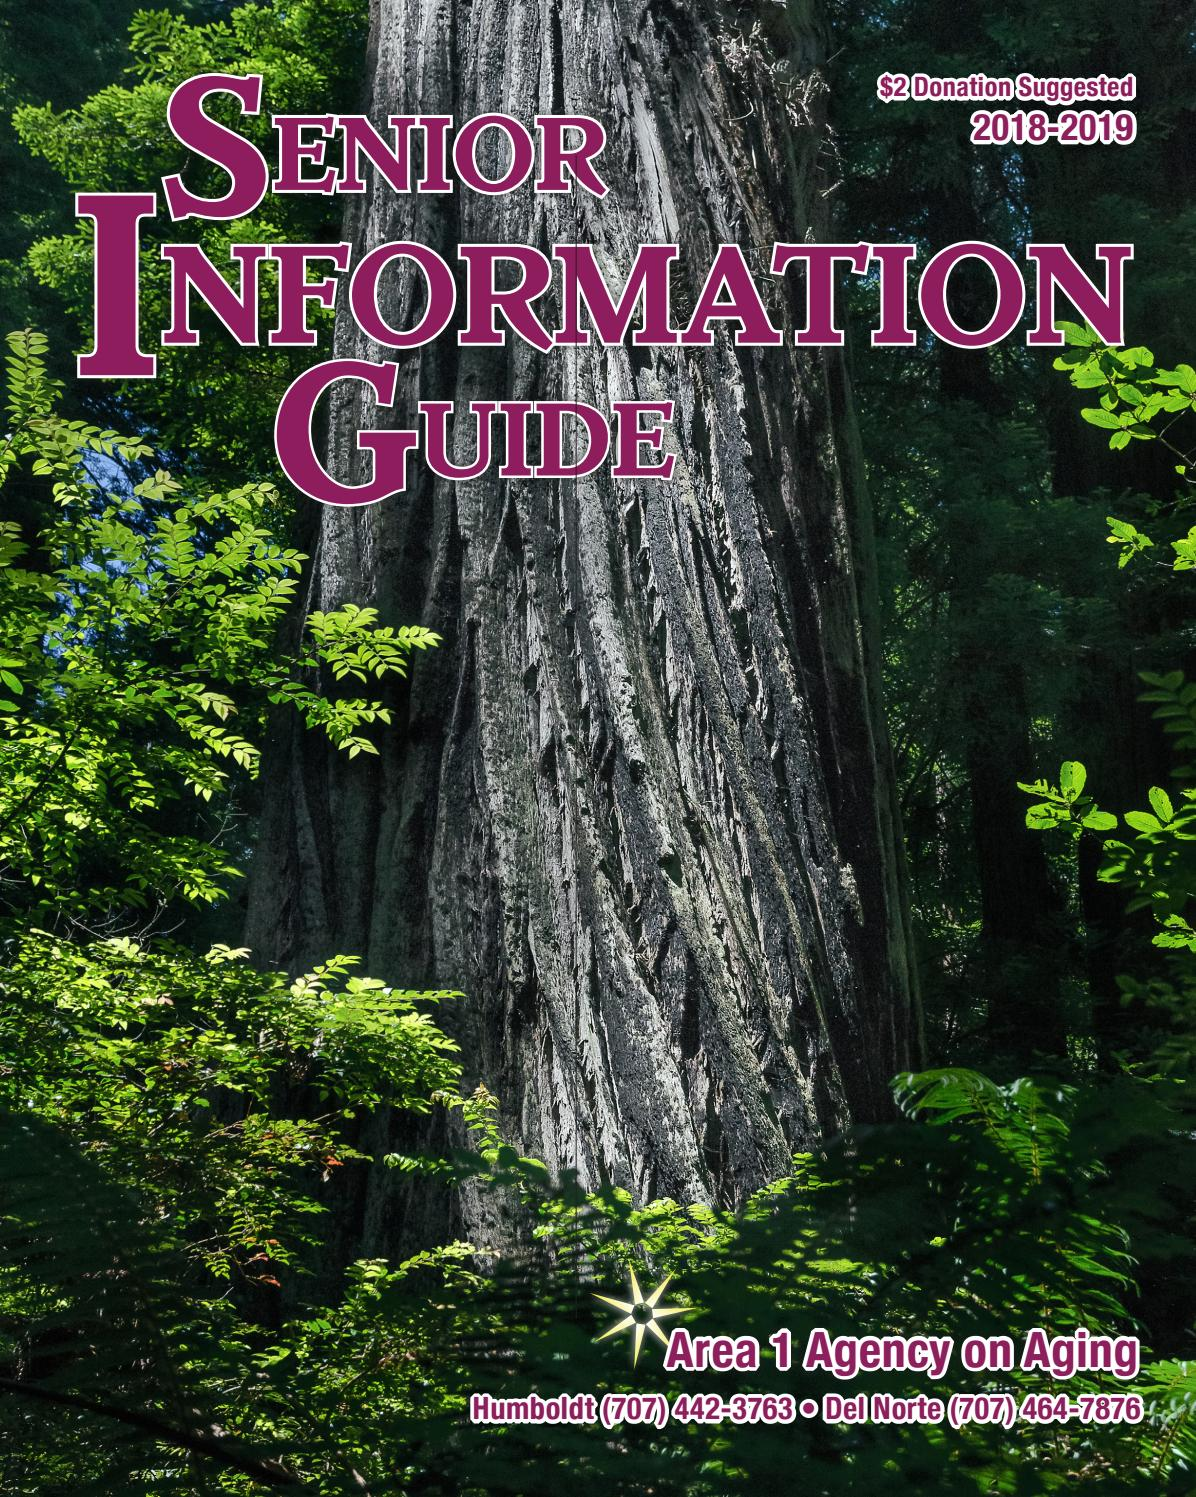 Senior Information Guide 2018-2019 by Area 1 Agency on Aging